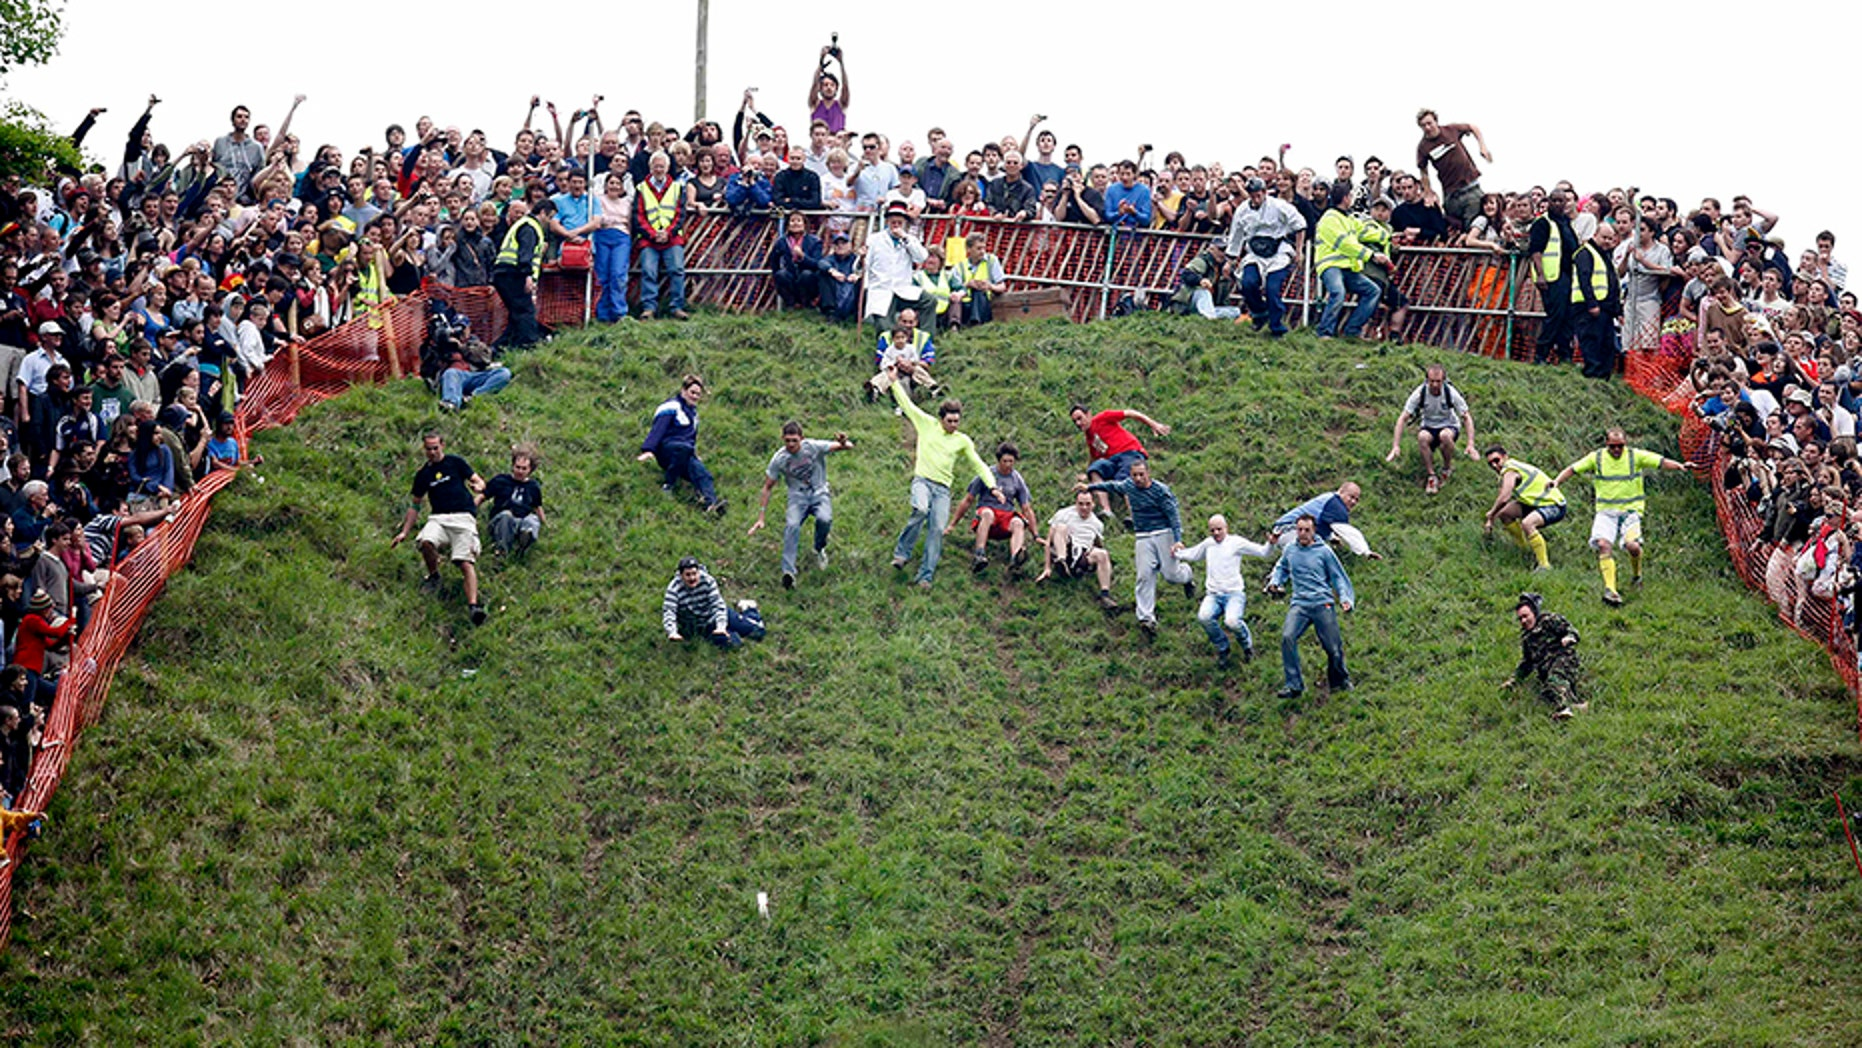 The annual Cooper's Hill Cheese Roll in Brockworth, England, draws hundreds of spectators eager to watch people hurl themselves down the steep hill after wheels of cheese.